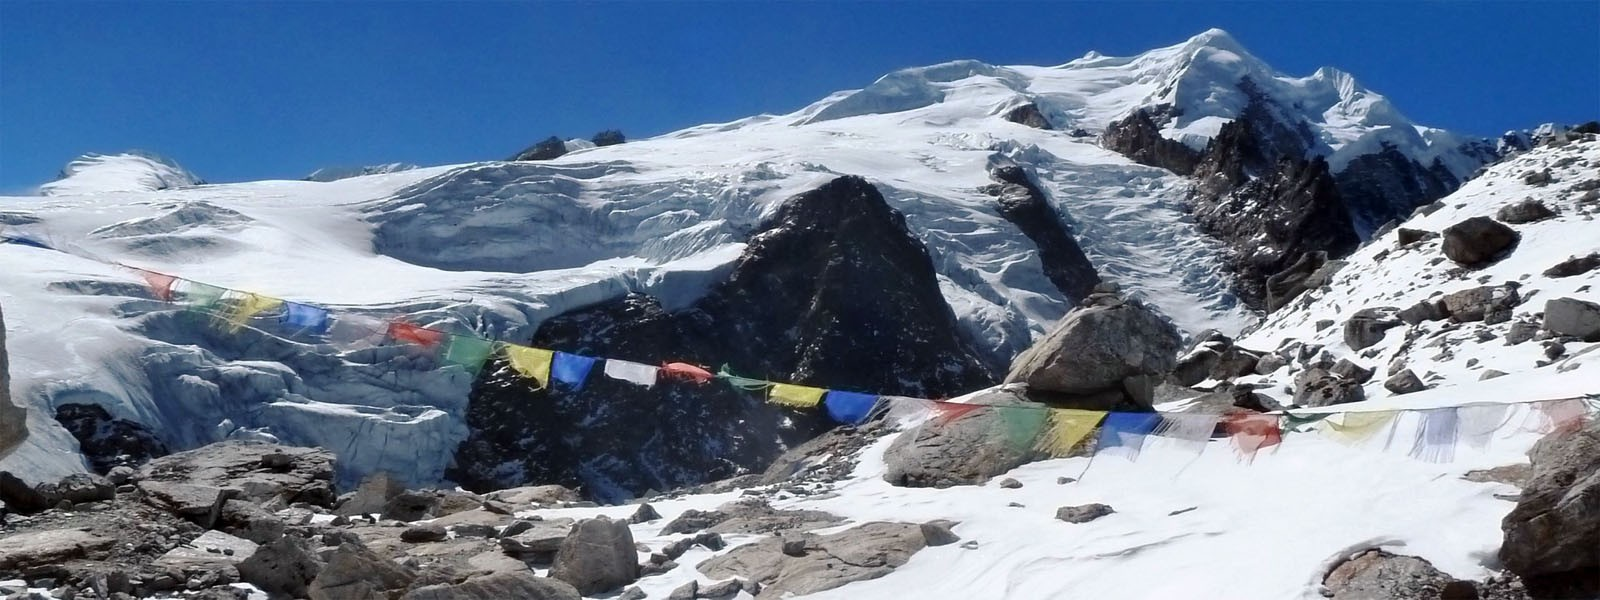 Mera Peak, Baruntse, Makalu Base Camp